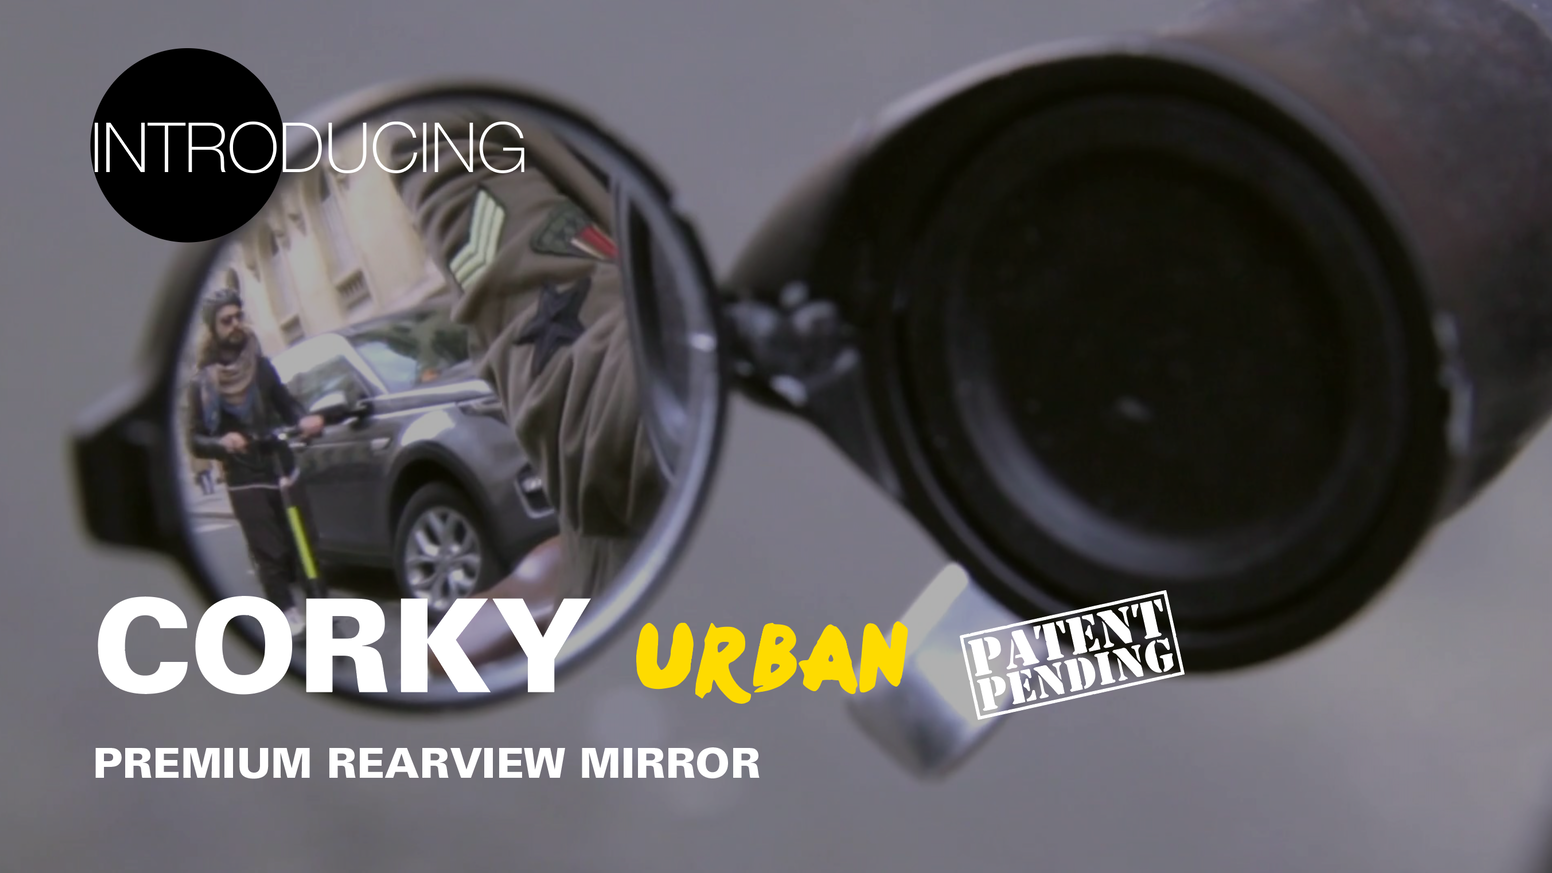 Unlikely Plug & Play Design rearview mirror compatible with any flat-bar Bike or scooter